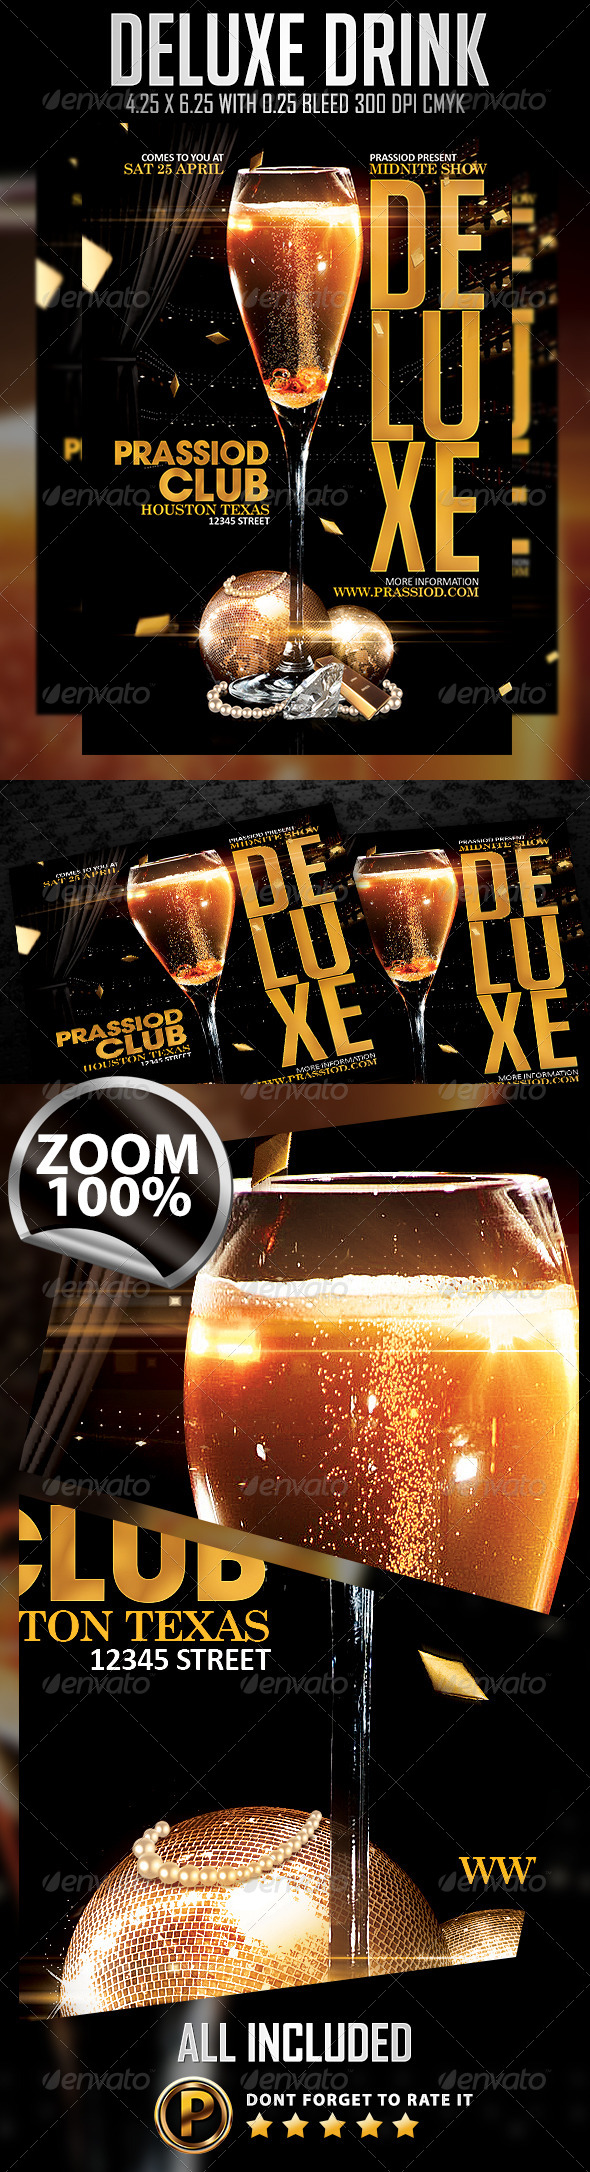 GraphicRiver Deluxe Drink Flyer Template 7478581